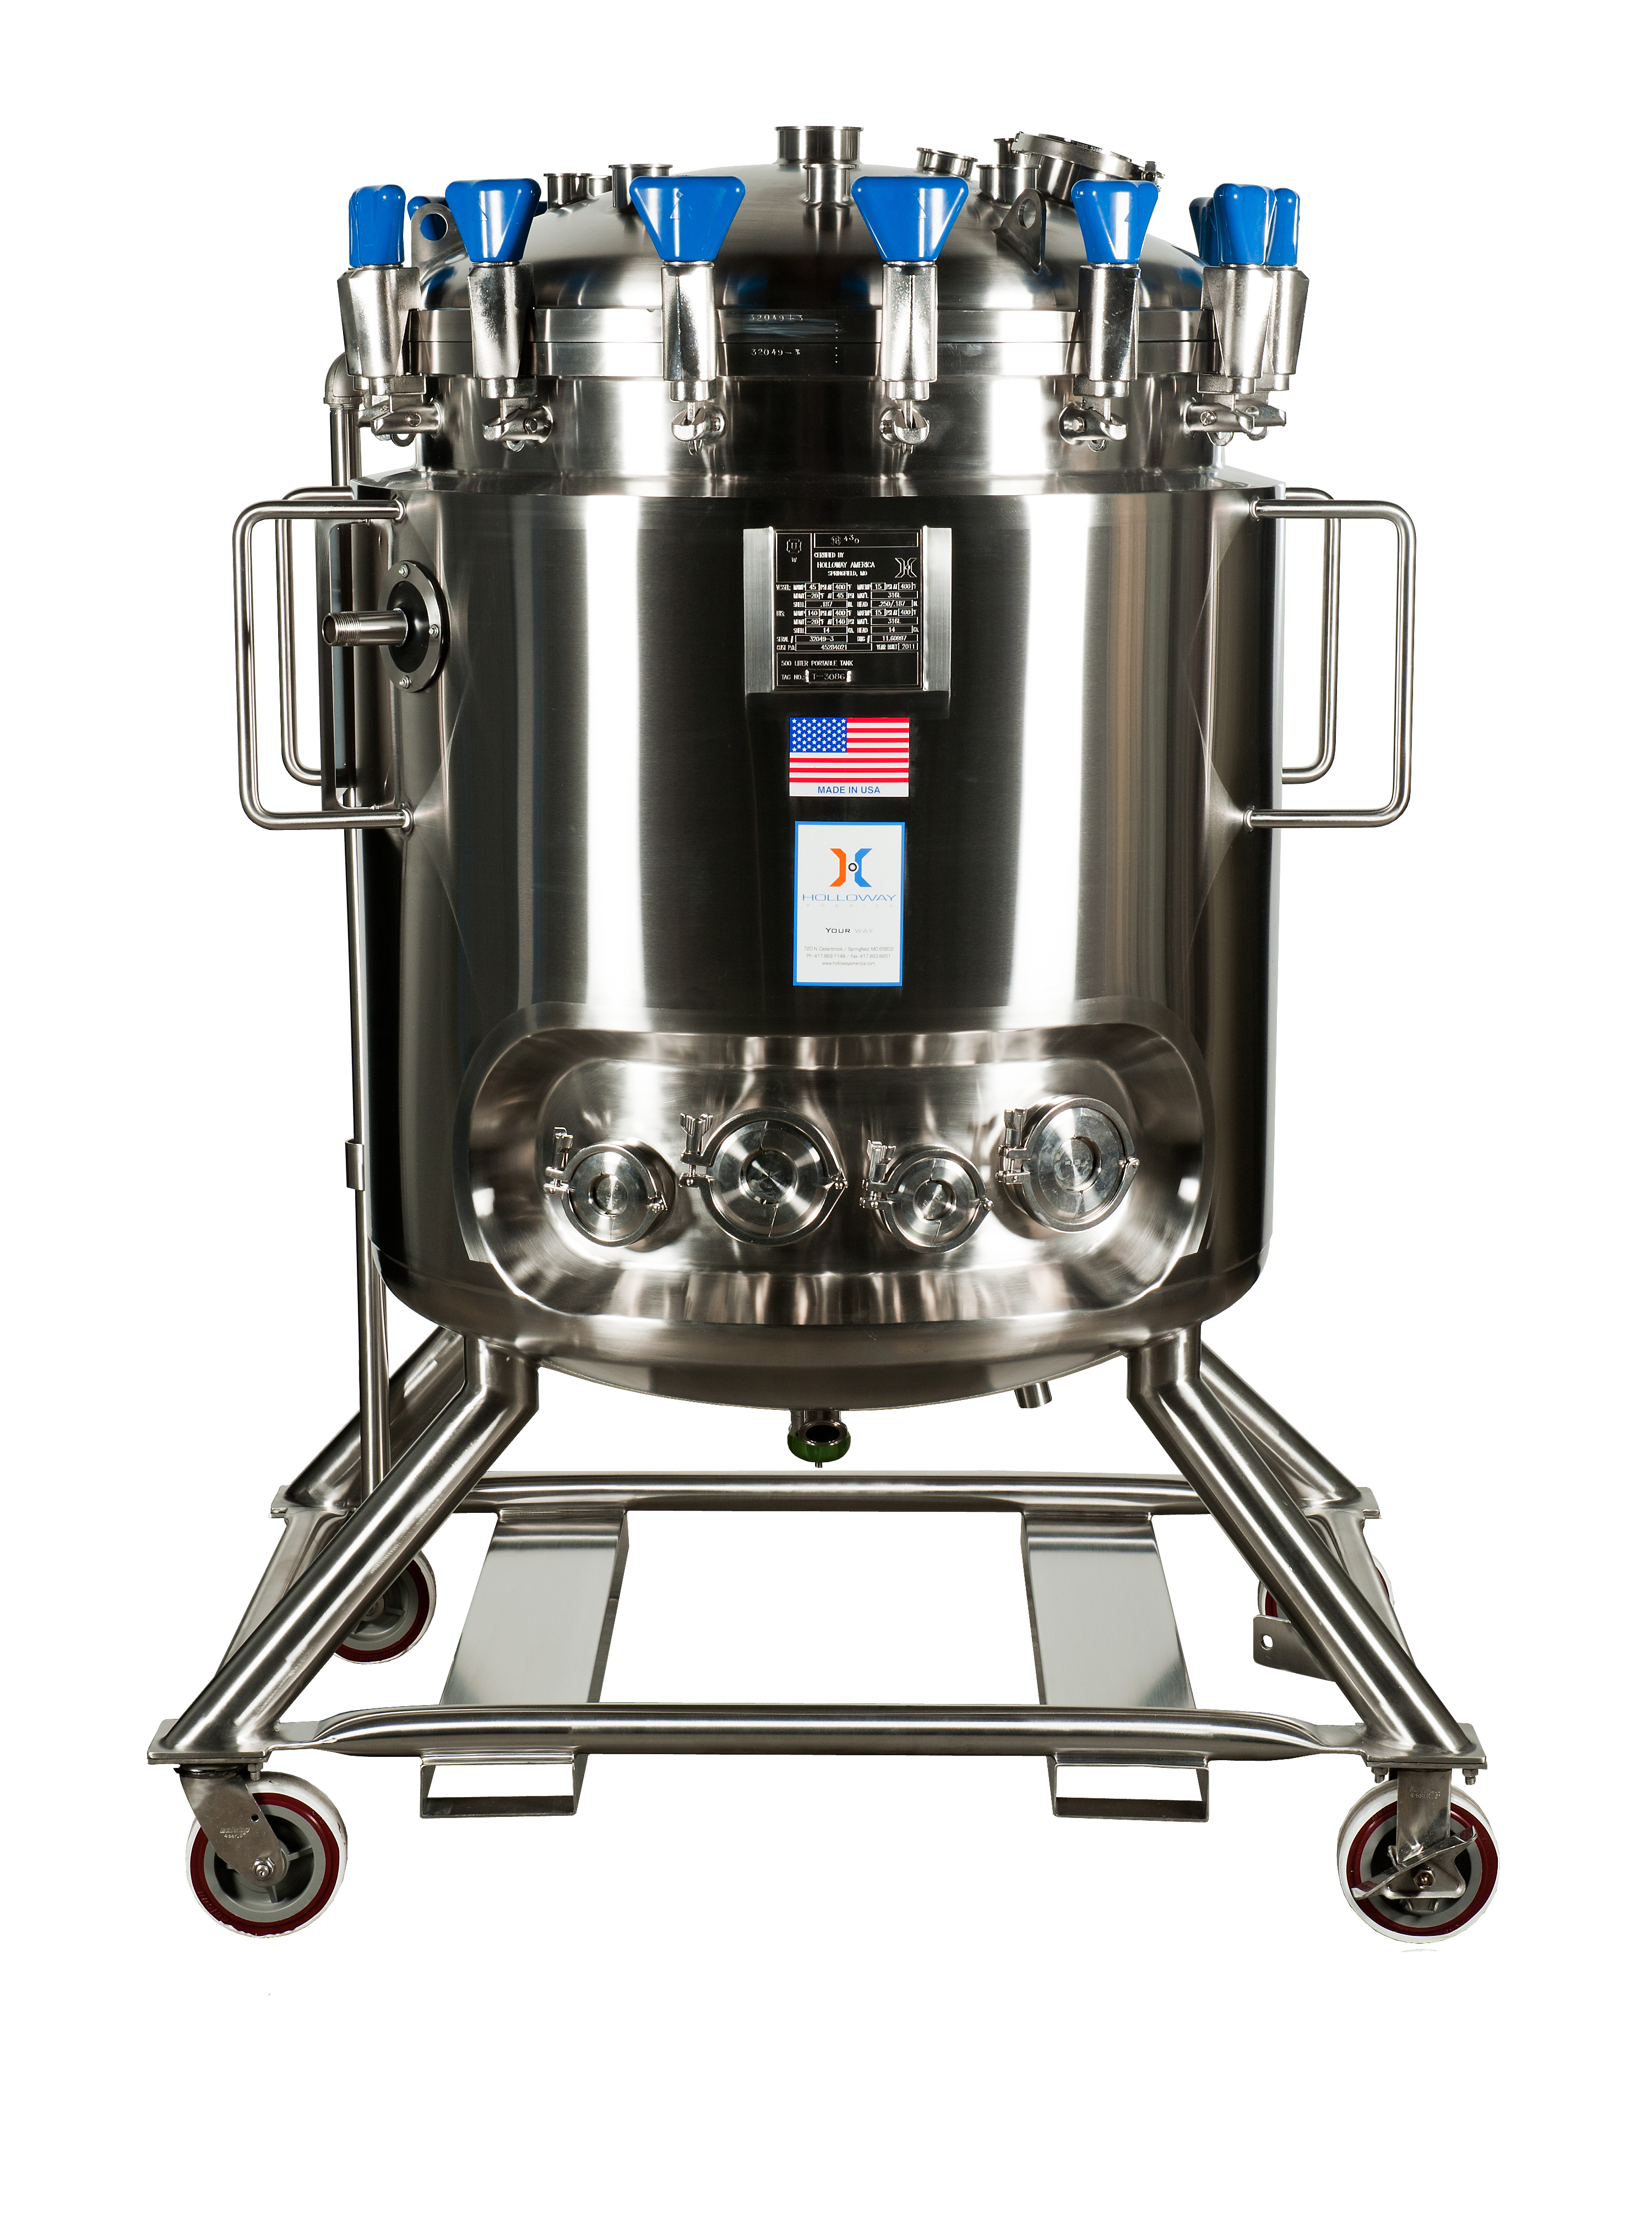 ASME pressure vessels can be portable, like this tank.A